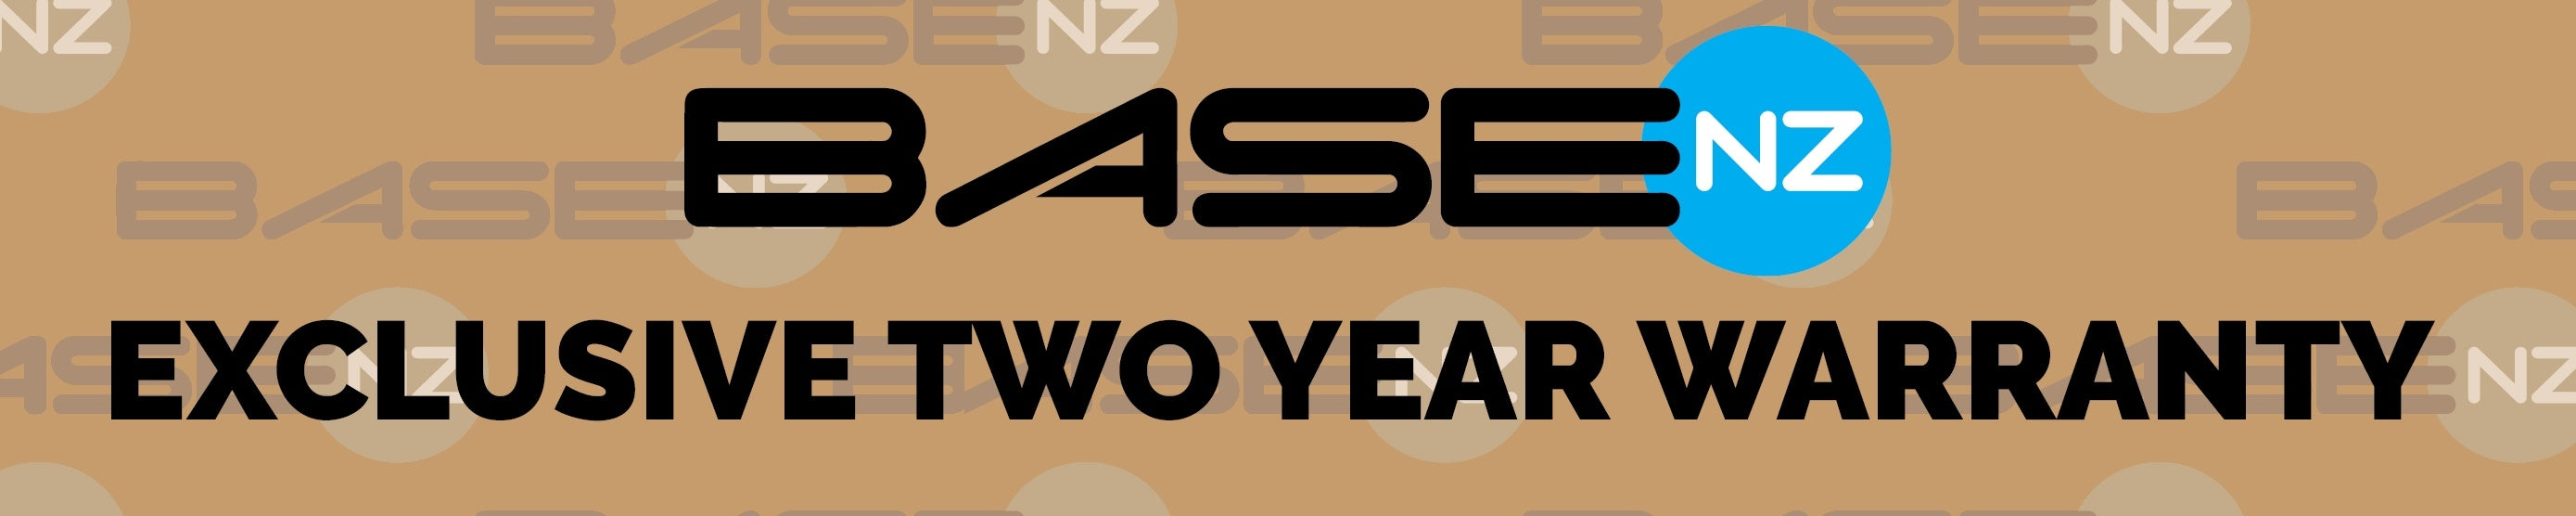 basenz exclusive two year warranty